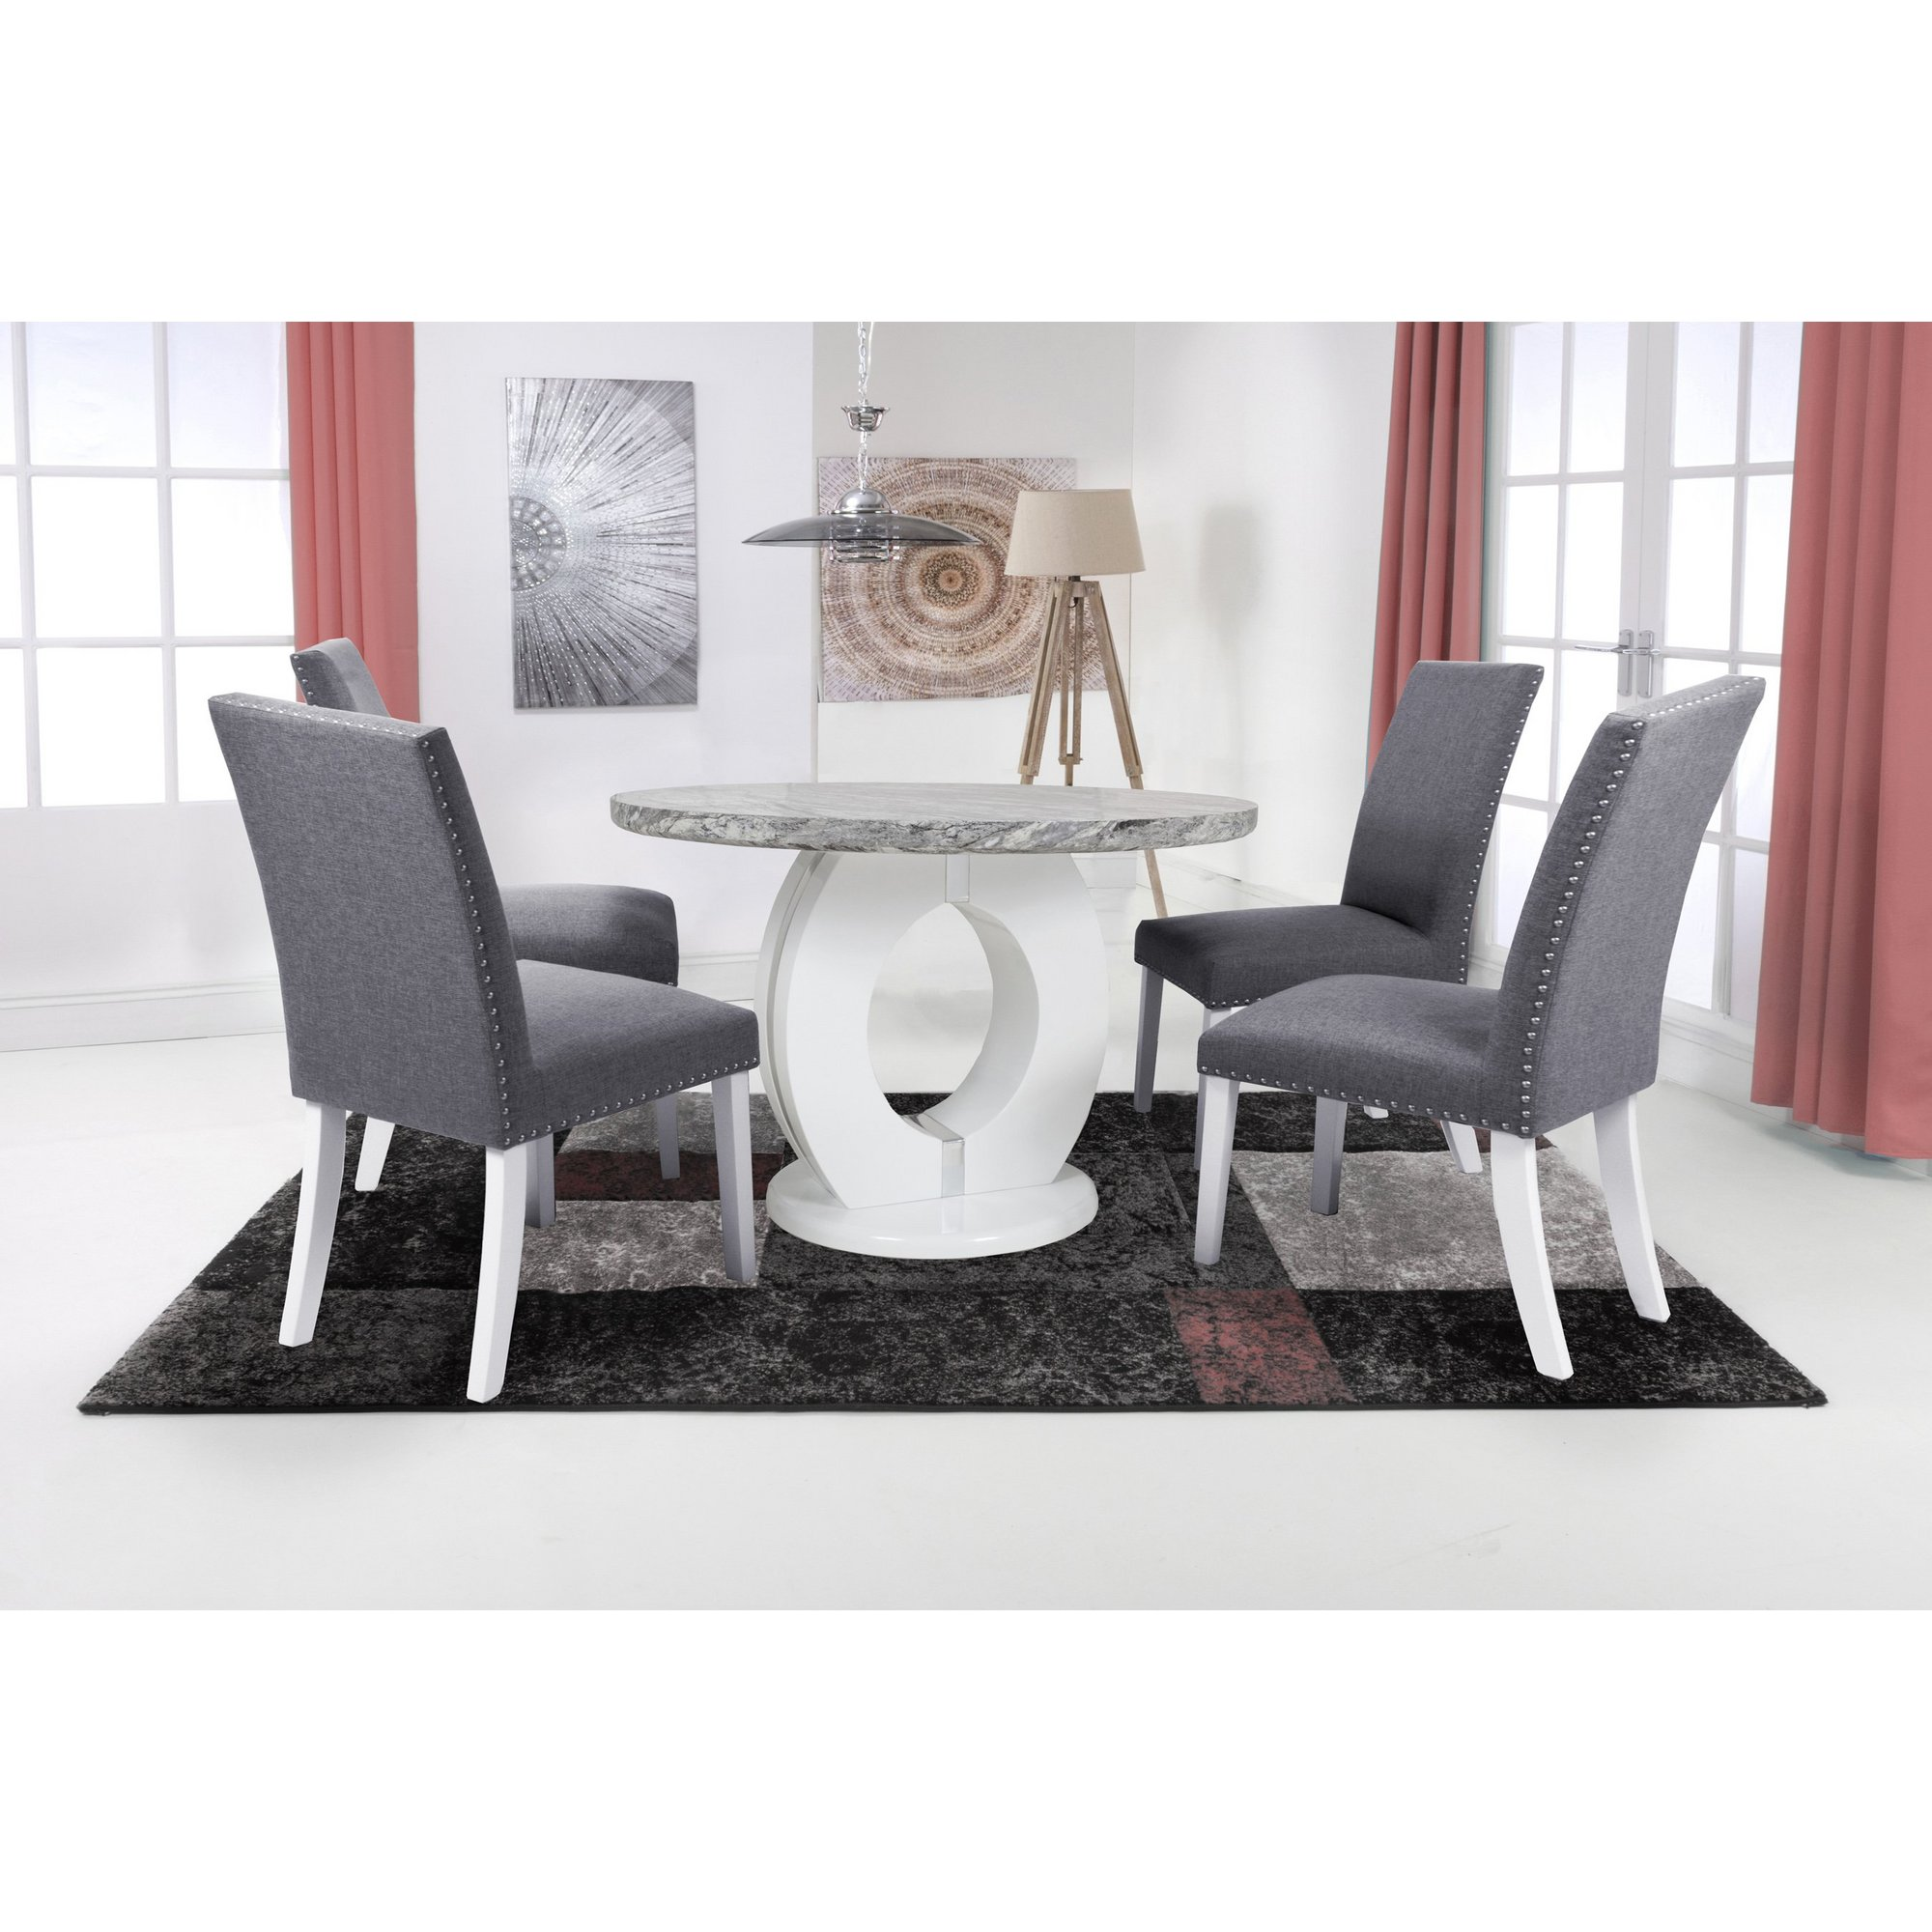 Image of Grey Marble Effect 5 Piece Round Dining Set with Randall Chairs